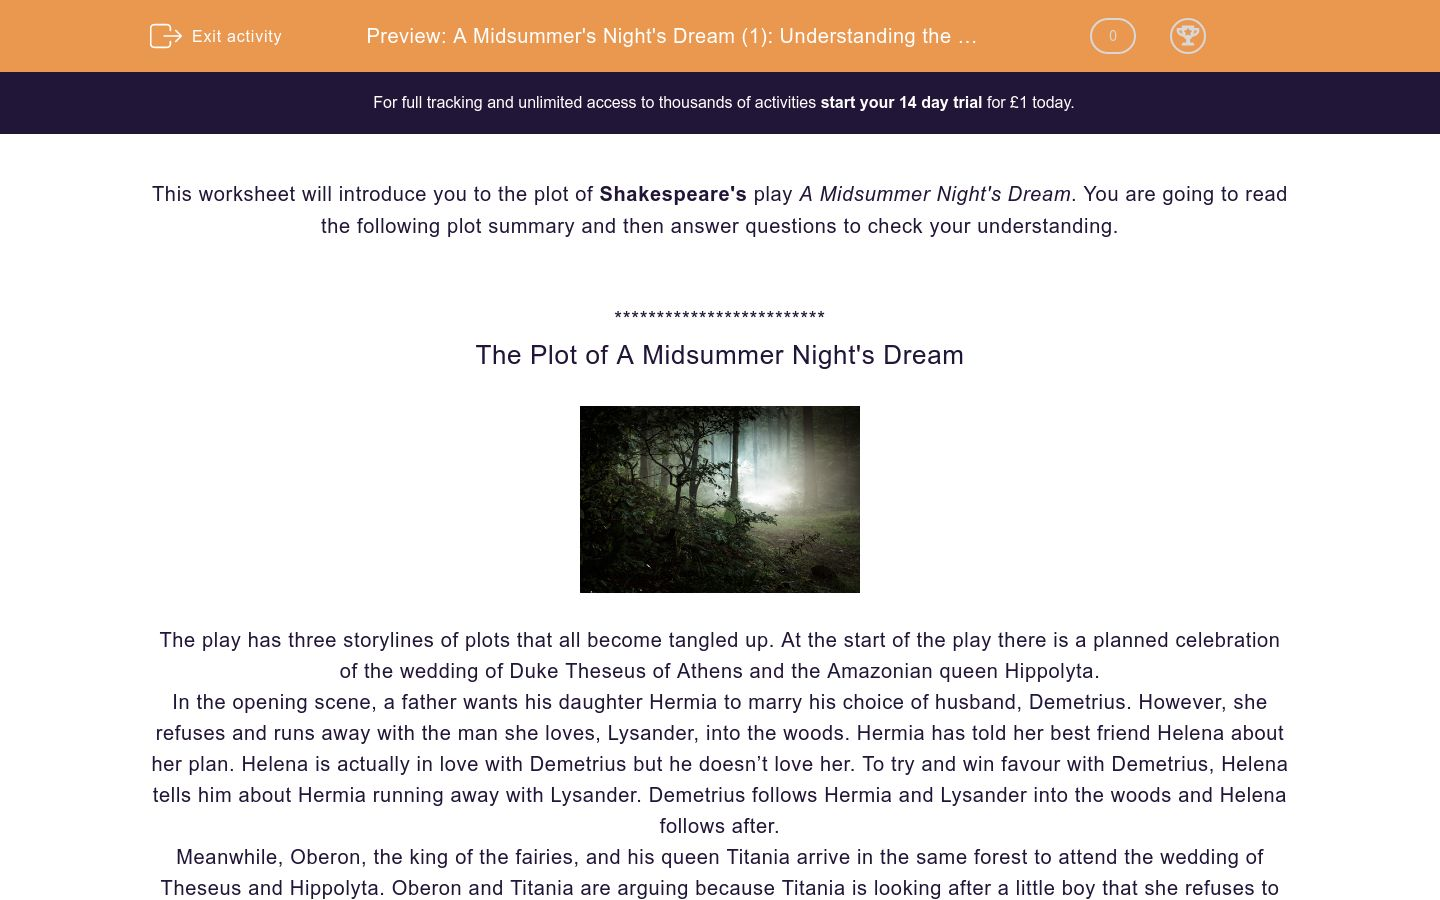 'A Midsummer's Night's Dream (1): Understanding the Plot' worksheet